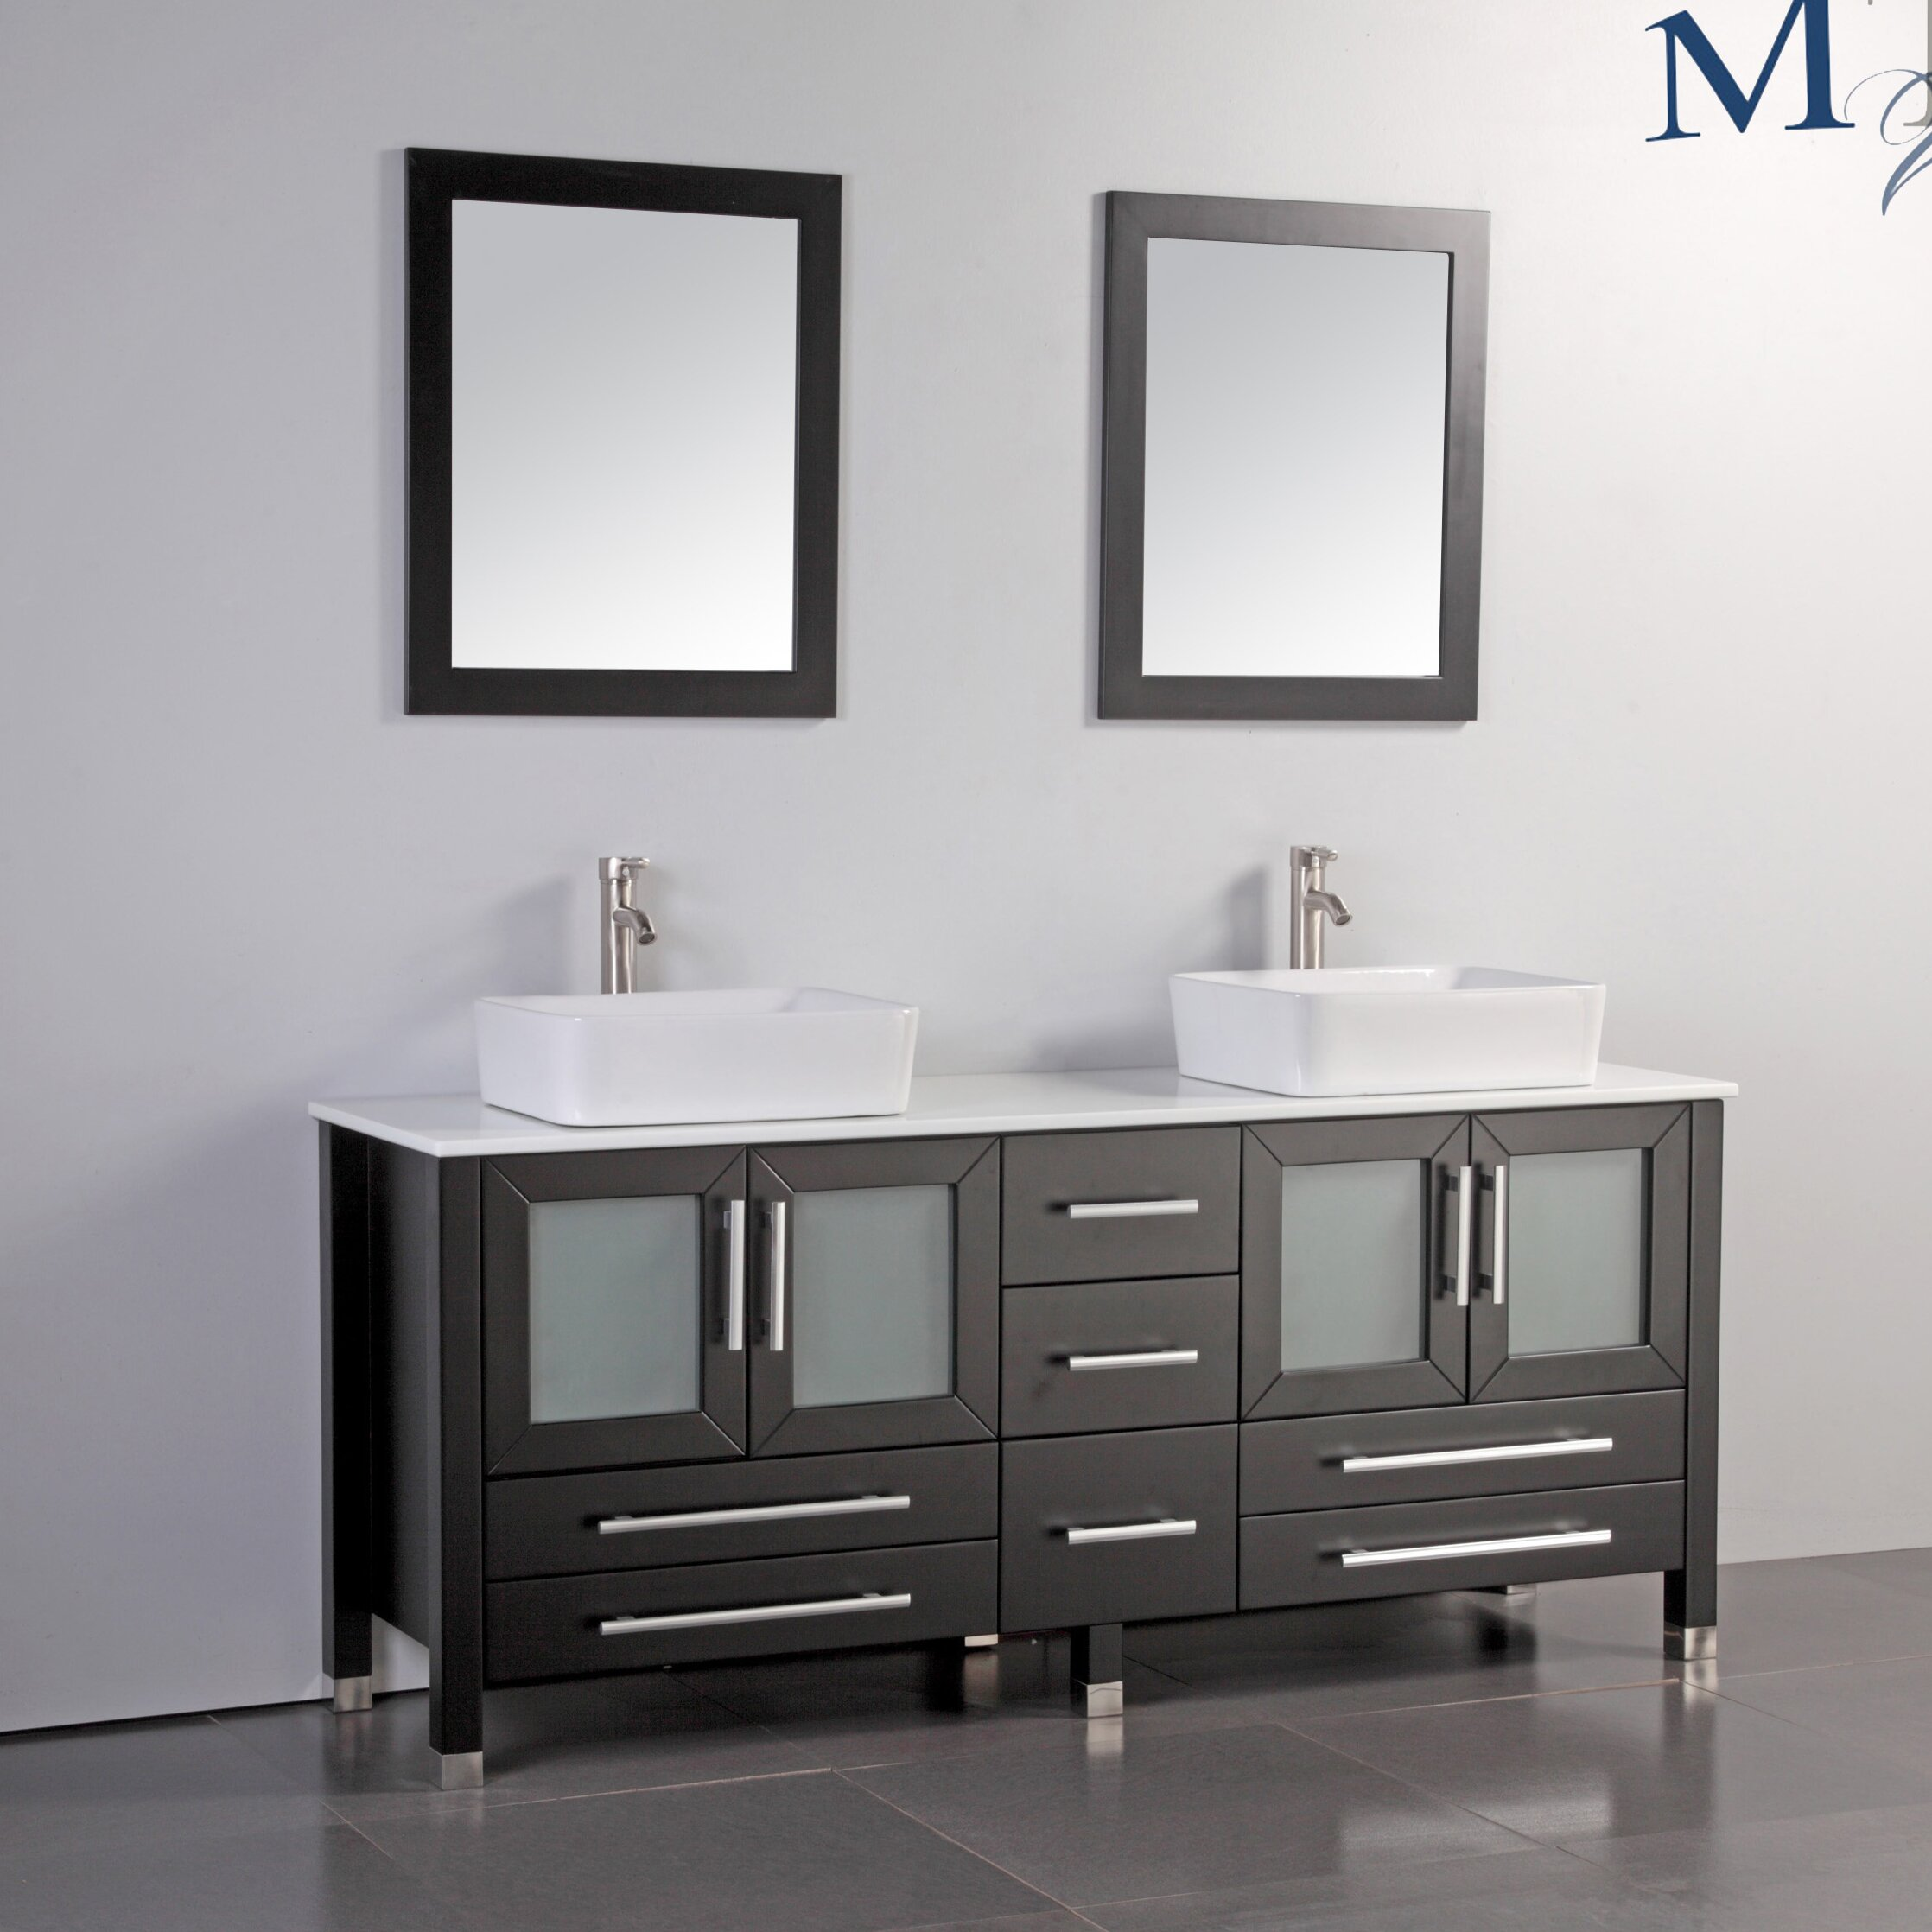 Perfect Having An Allwhite Bathroom May Be The Renovation You May Need To Give The Bathroom Space A Brandnew Feel Add Lights Around Your Mirror For An Even